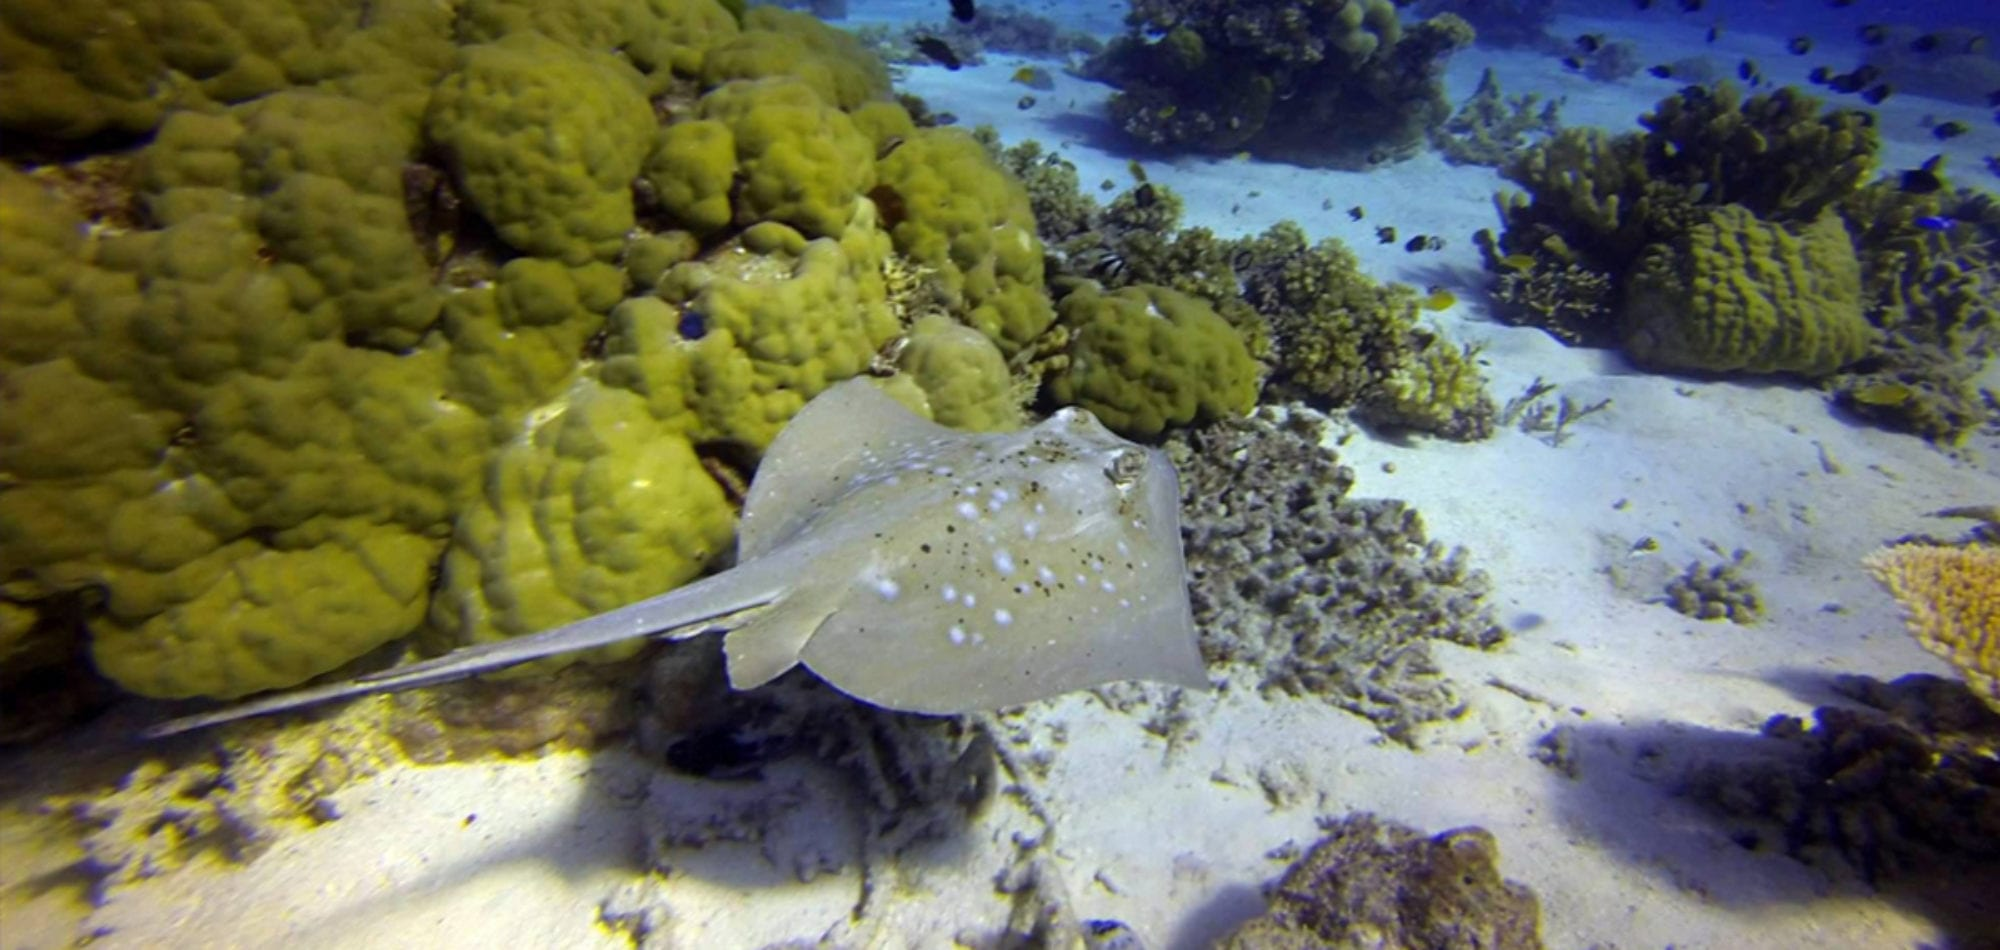 Sea Esta - Stingray